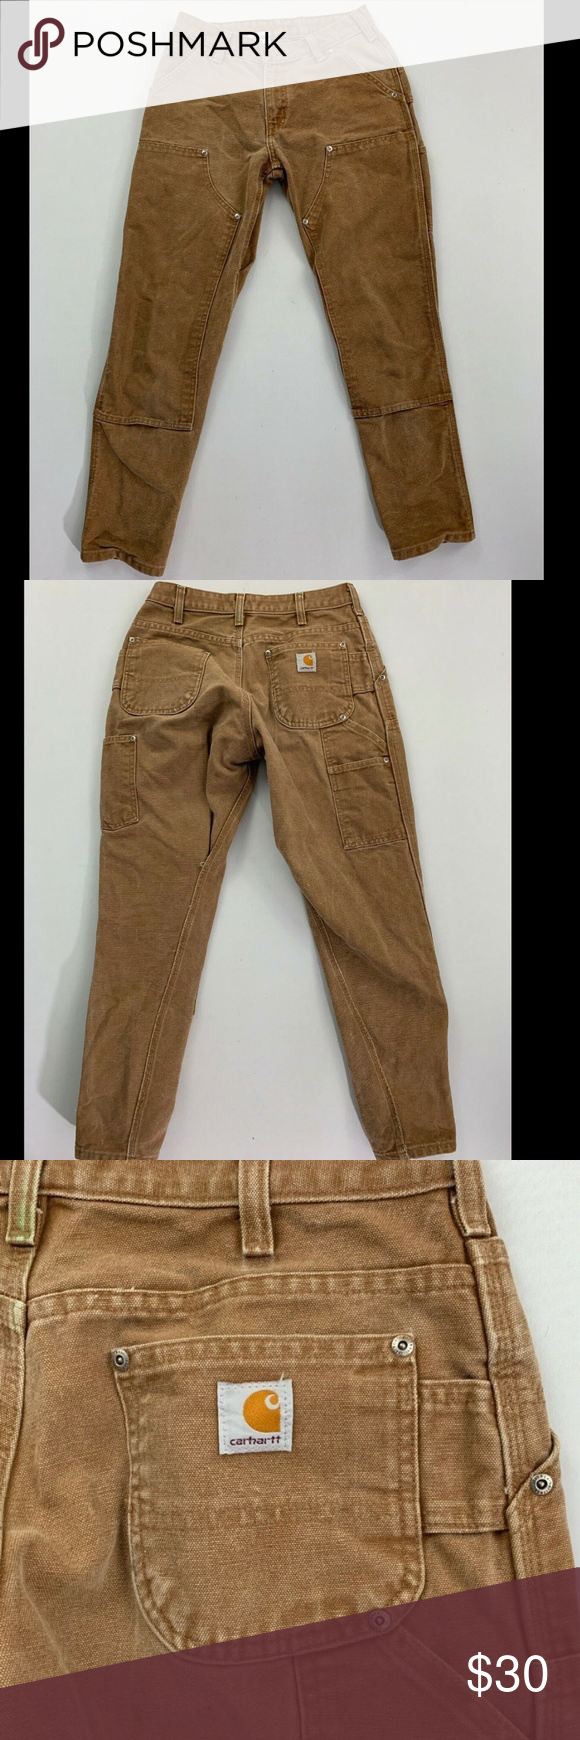 Carhartt Women's Brown Utility Jeans Size 28 Carhartt jeans    Size - 4    Color - brown    Condition - good condition    Measurements in inches:  Waist - 28  Inseam - 27    Please ensure the measurements are suitable and let us know if you have any questions    Thank you for shopping! Carhartt Jeans Straight Leg #carharttwomen Carhartt Women's Brown Utility Jeans Size 28 Carhartt jeans    Size - 4    Color - brown    Condition - good condition    Measurements in inches:  Waist - 28  Inseam - 27 #carharttwomen